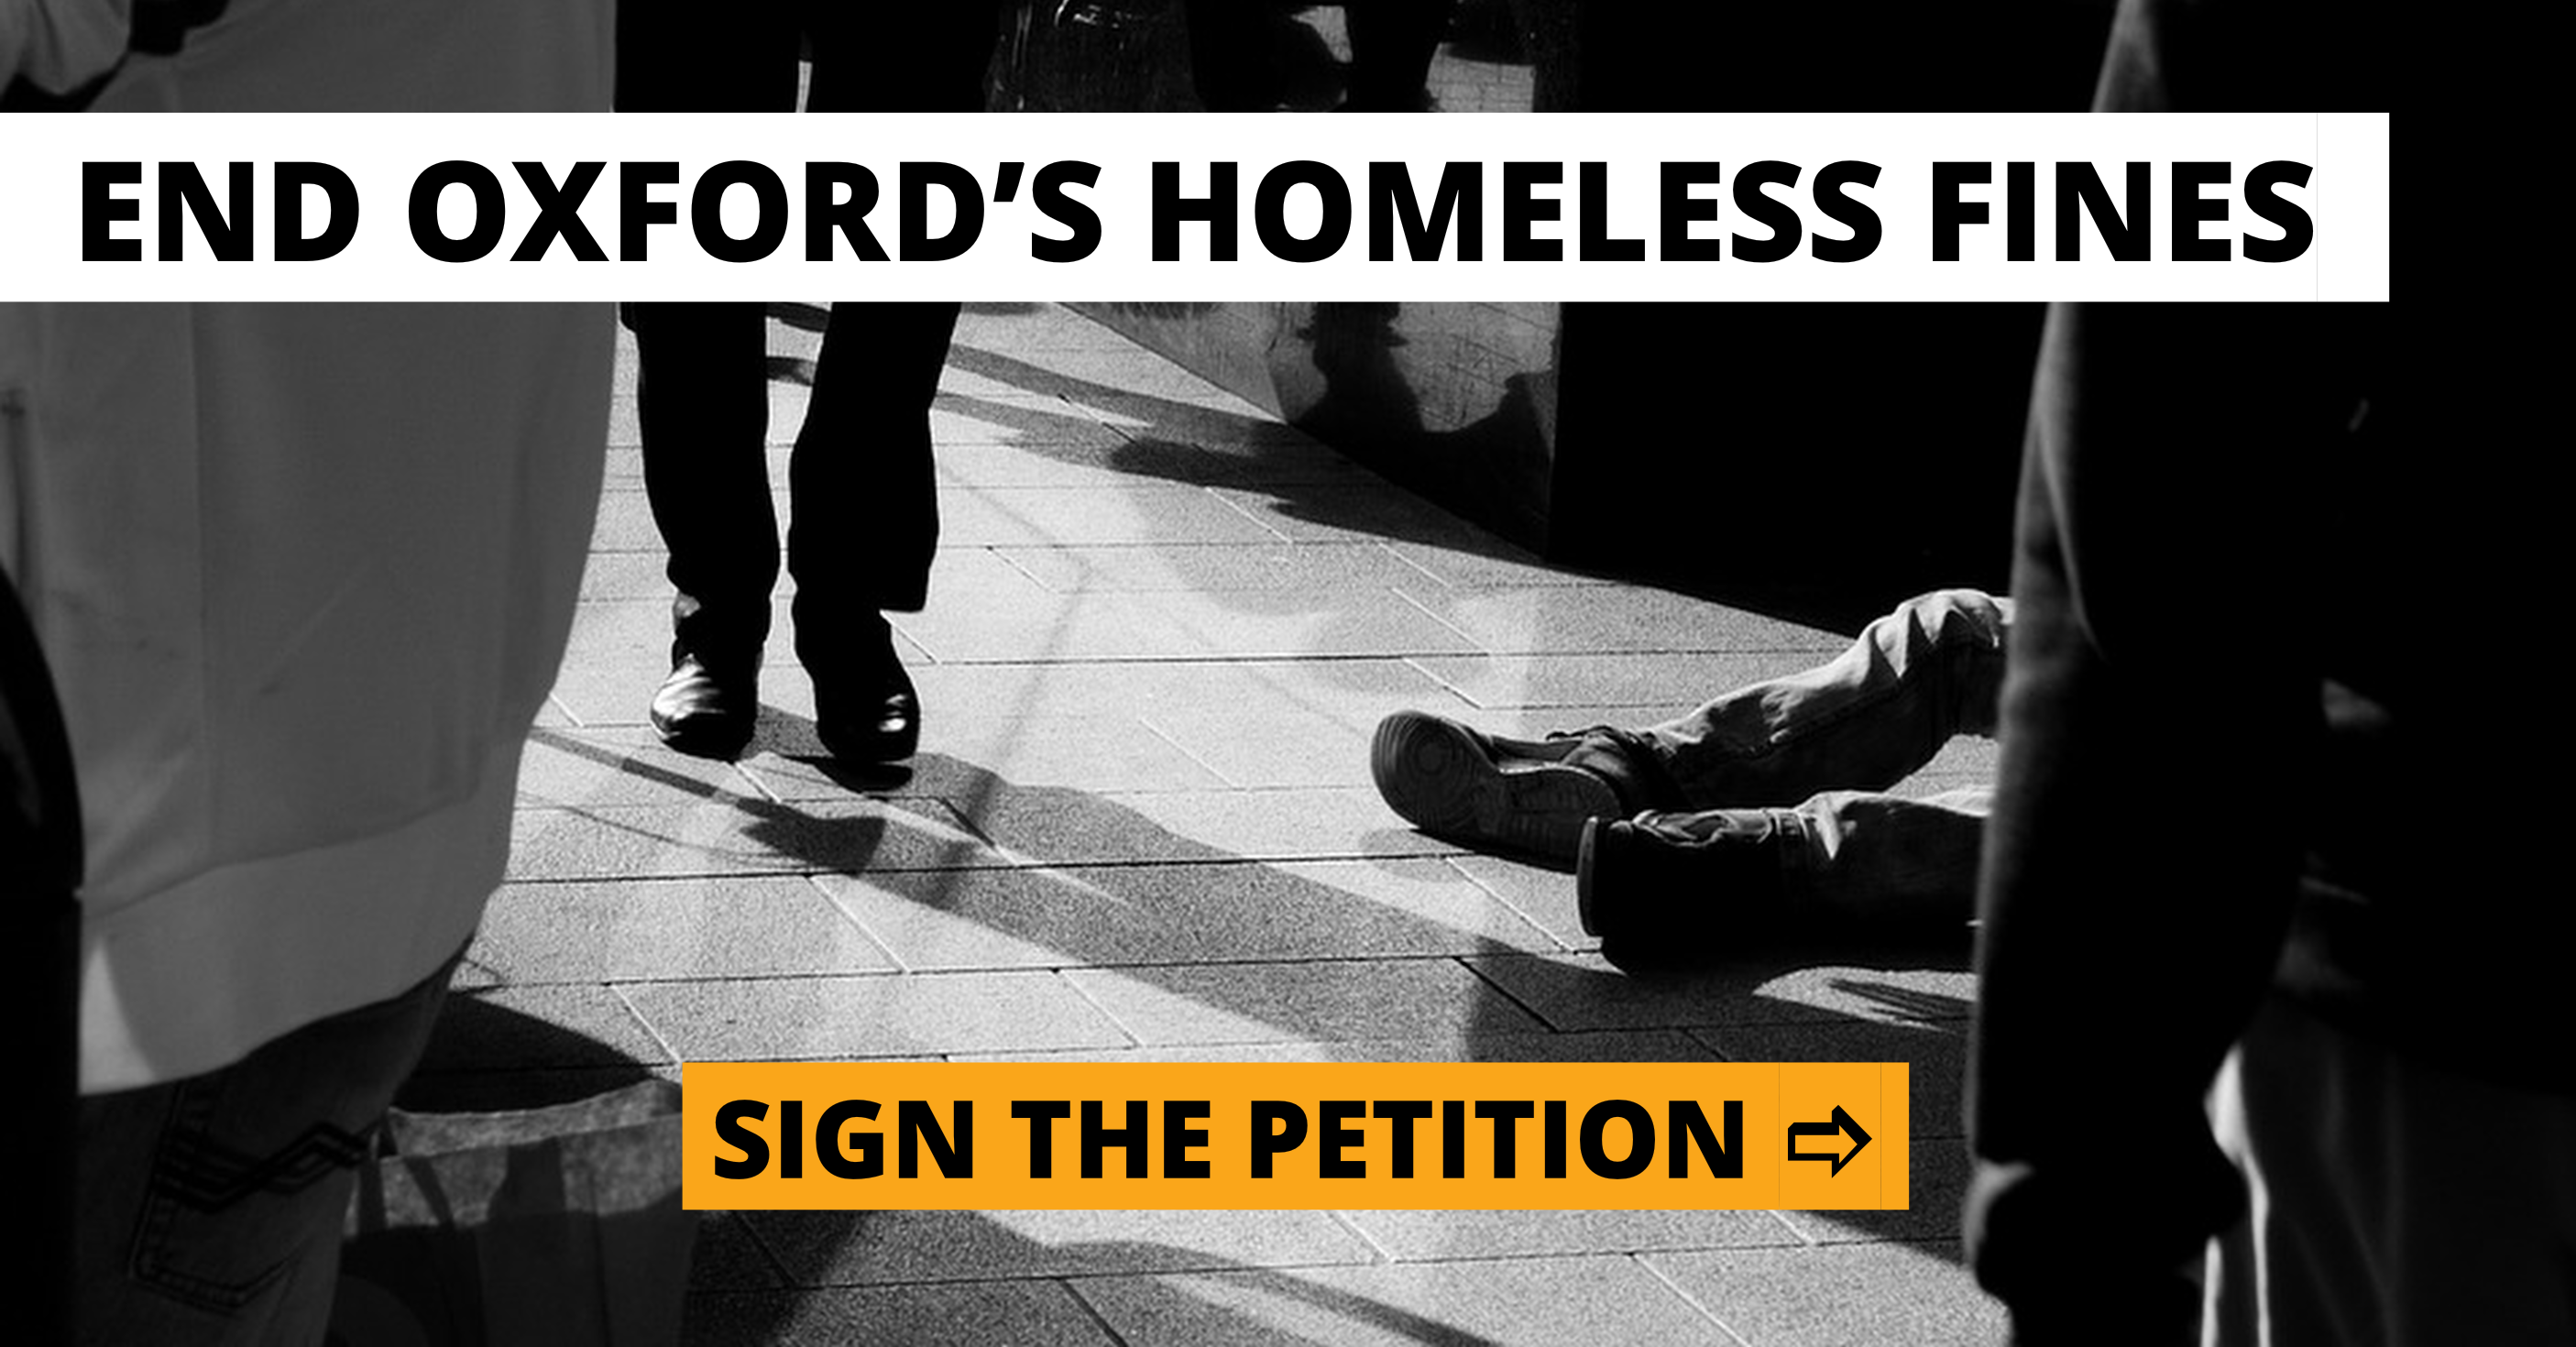 End Oxford's Homeless Fines